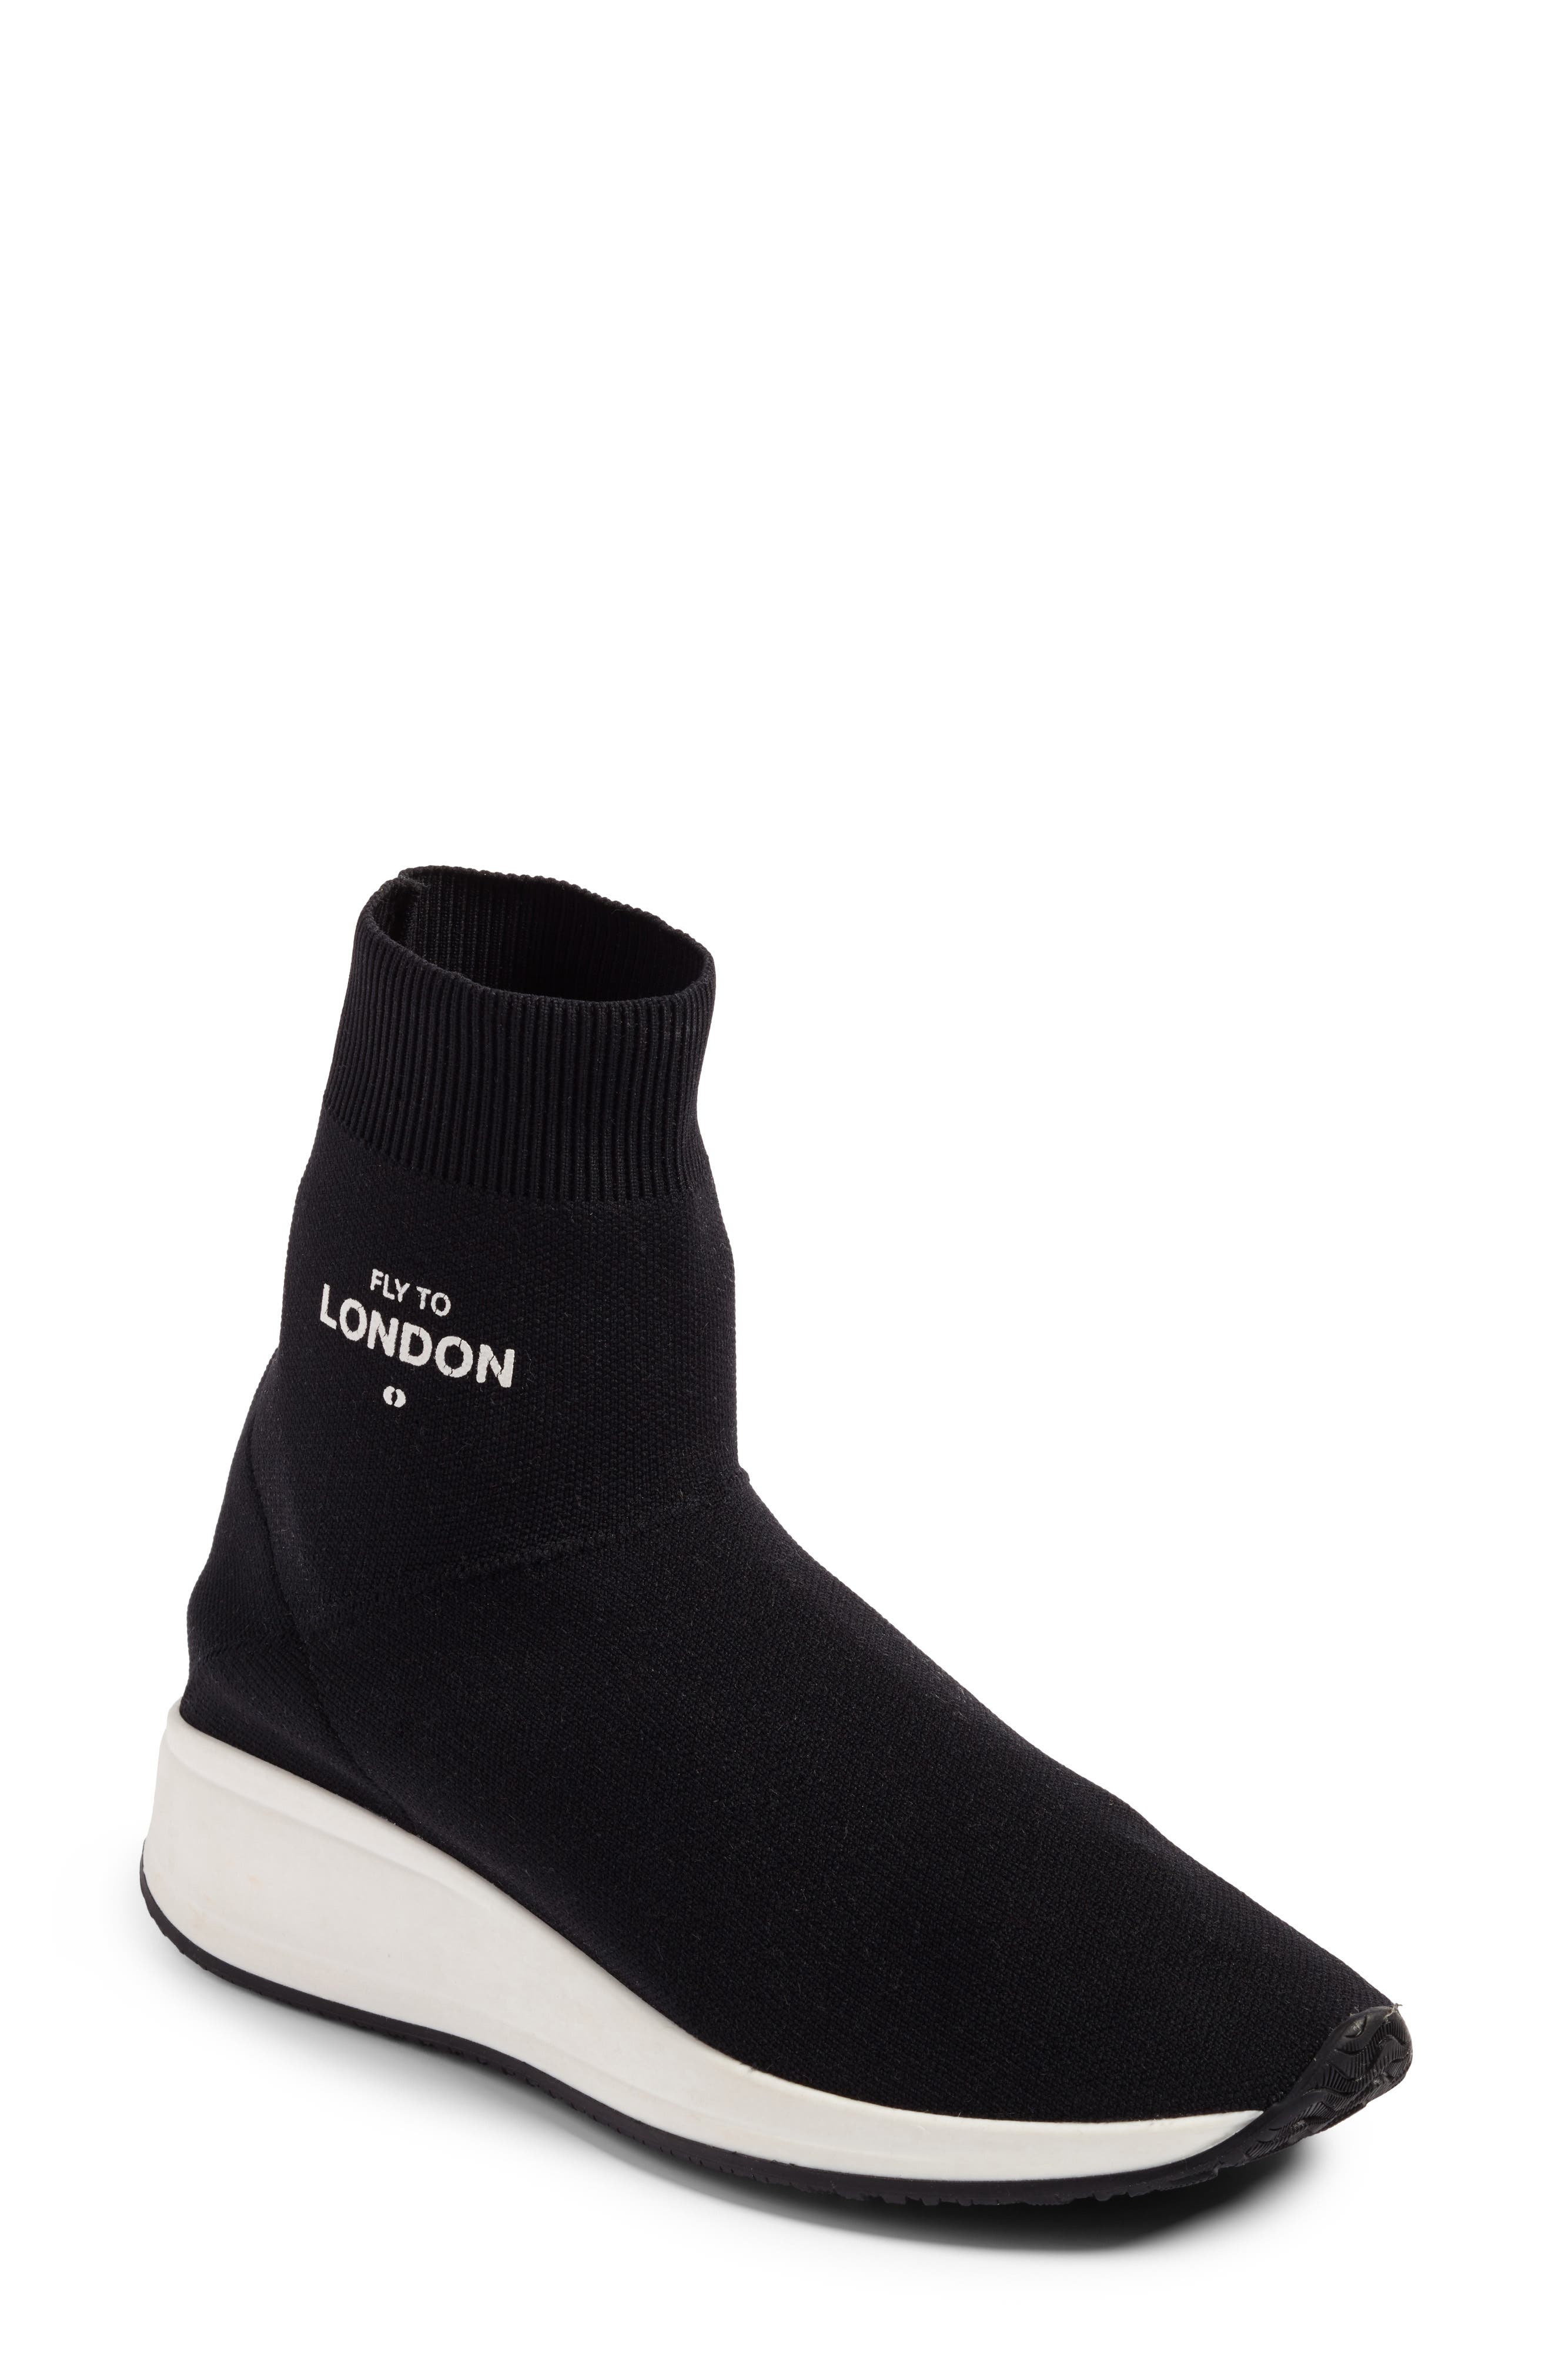 Fly To High Top Sock Sneaker,                         Main,                         color, 002